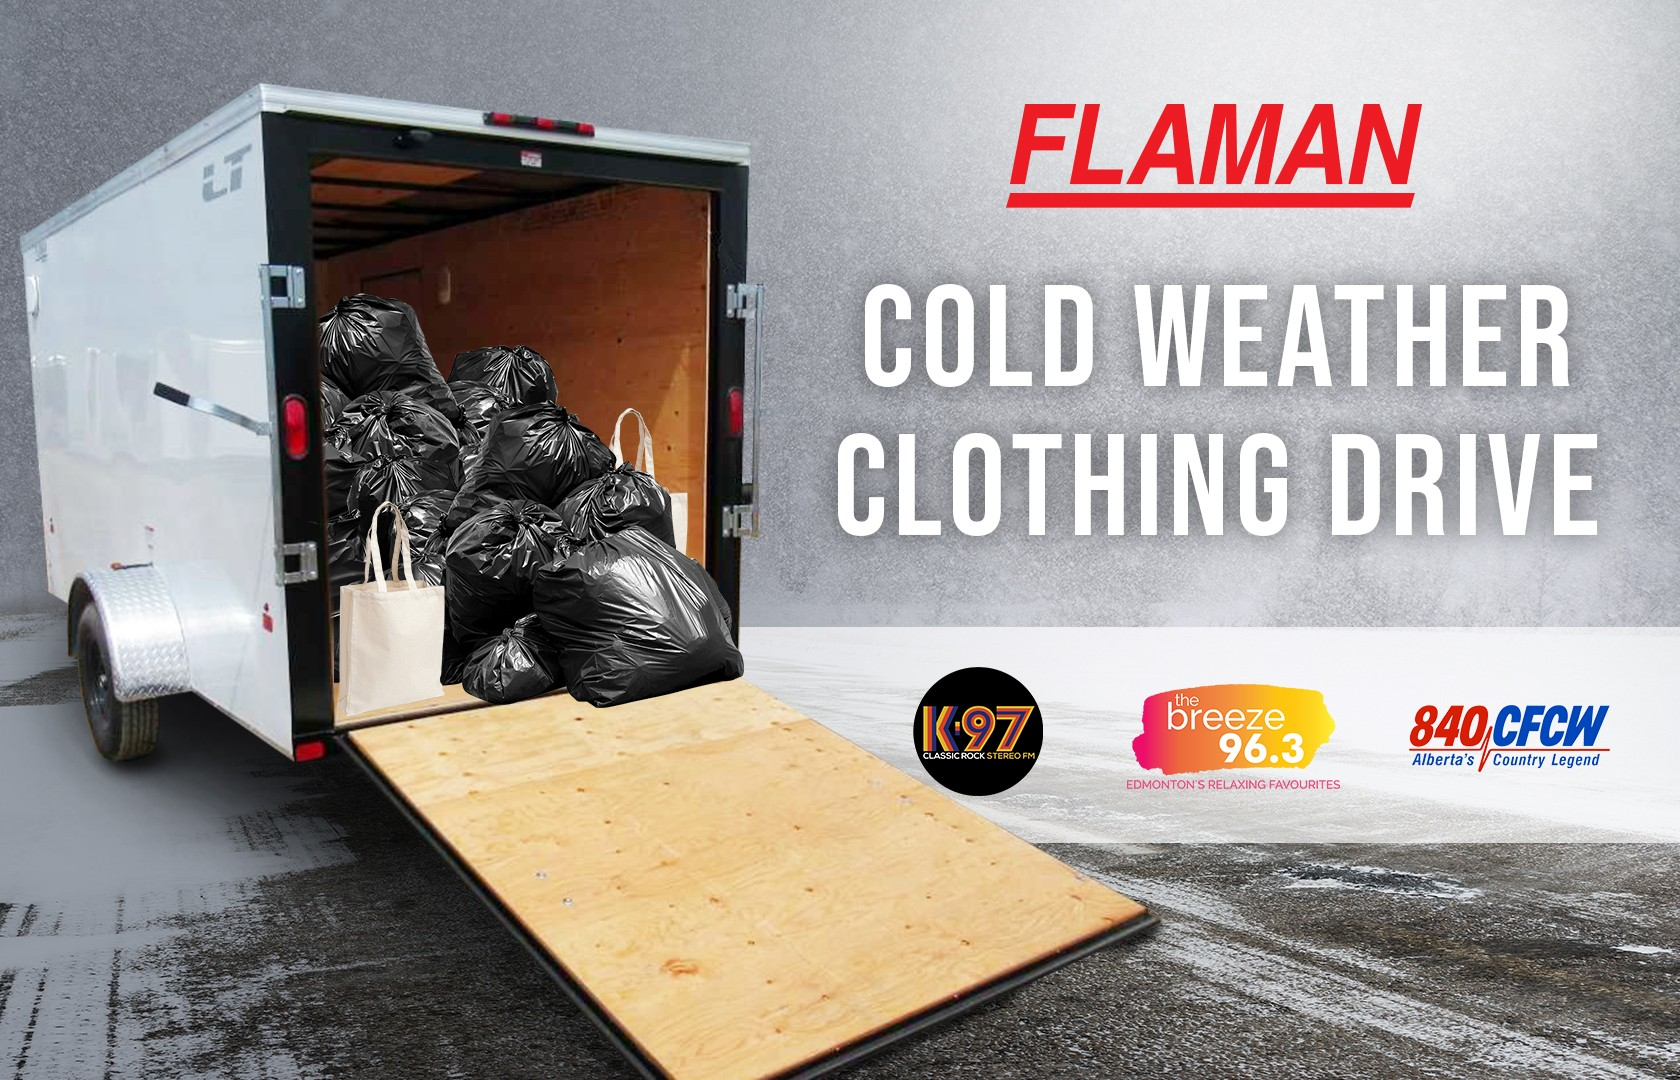 Flaman Cold Weather Clothing Drive